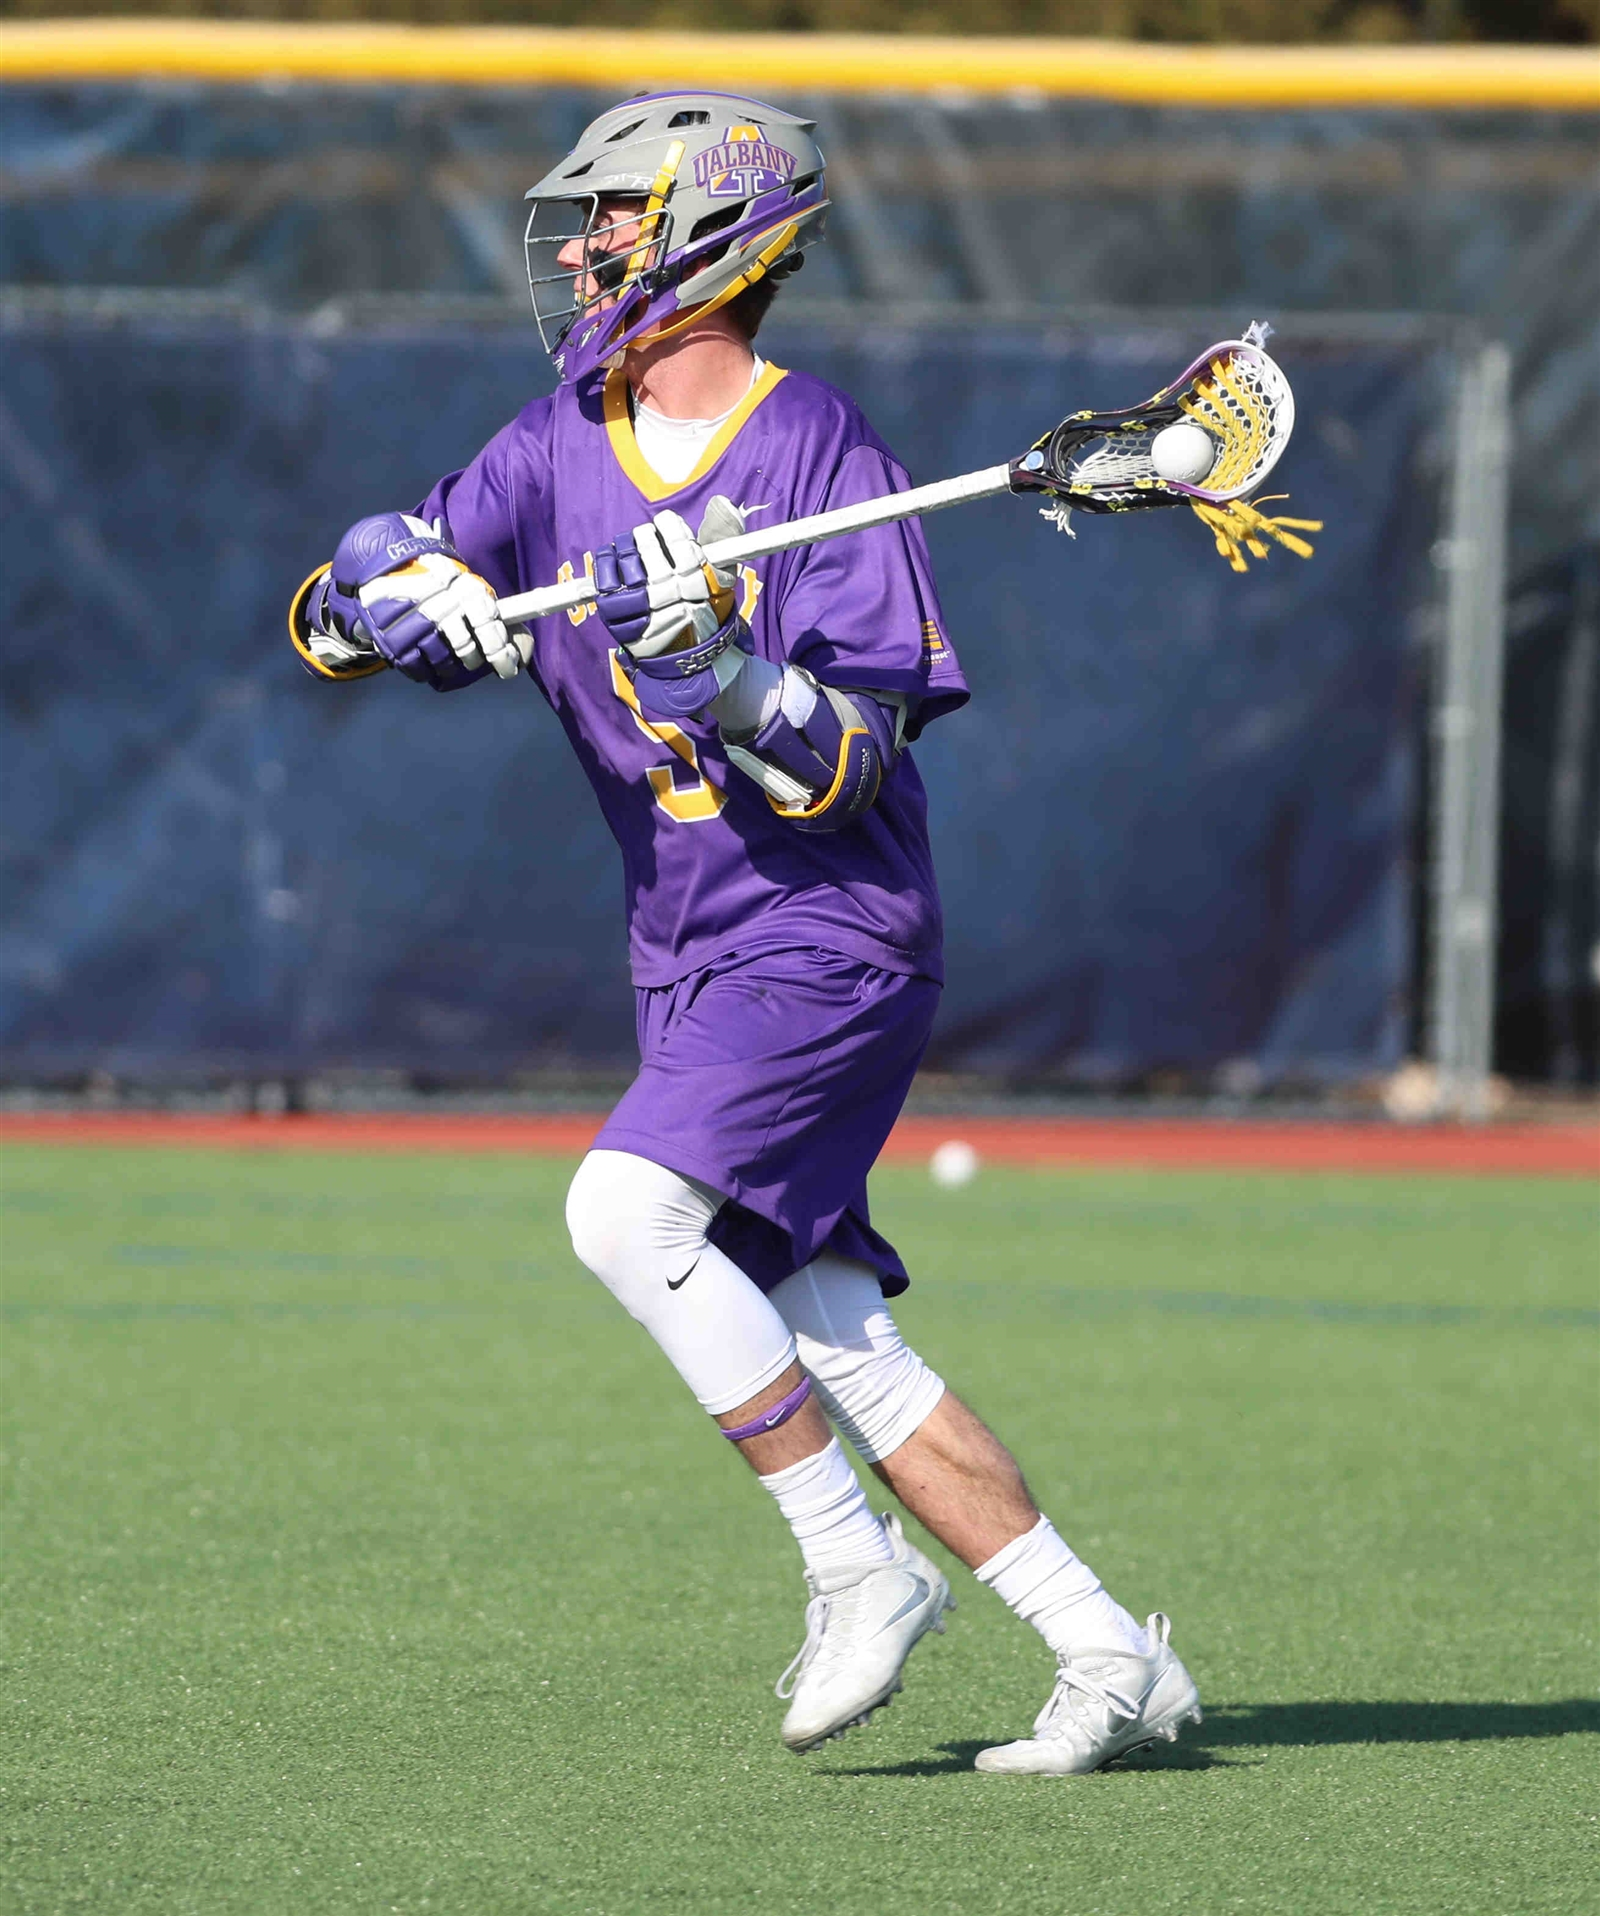 Albany's Connor Fields (5) brings the ball up the field.